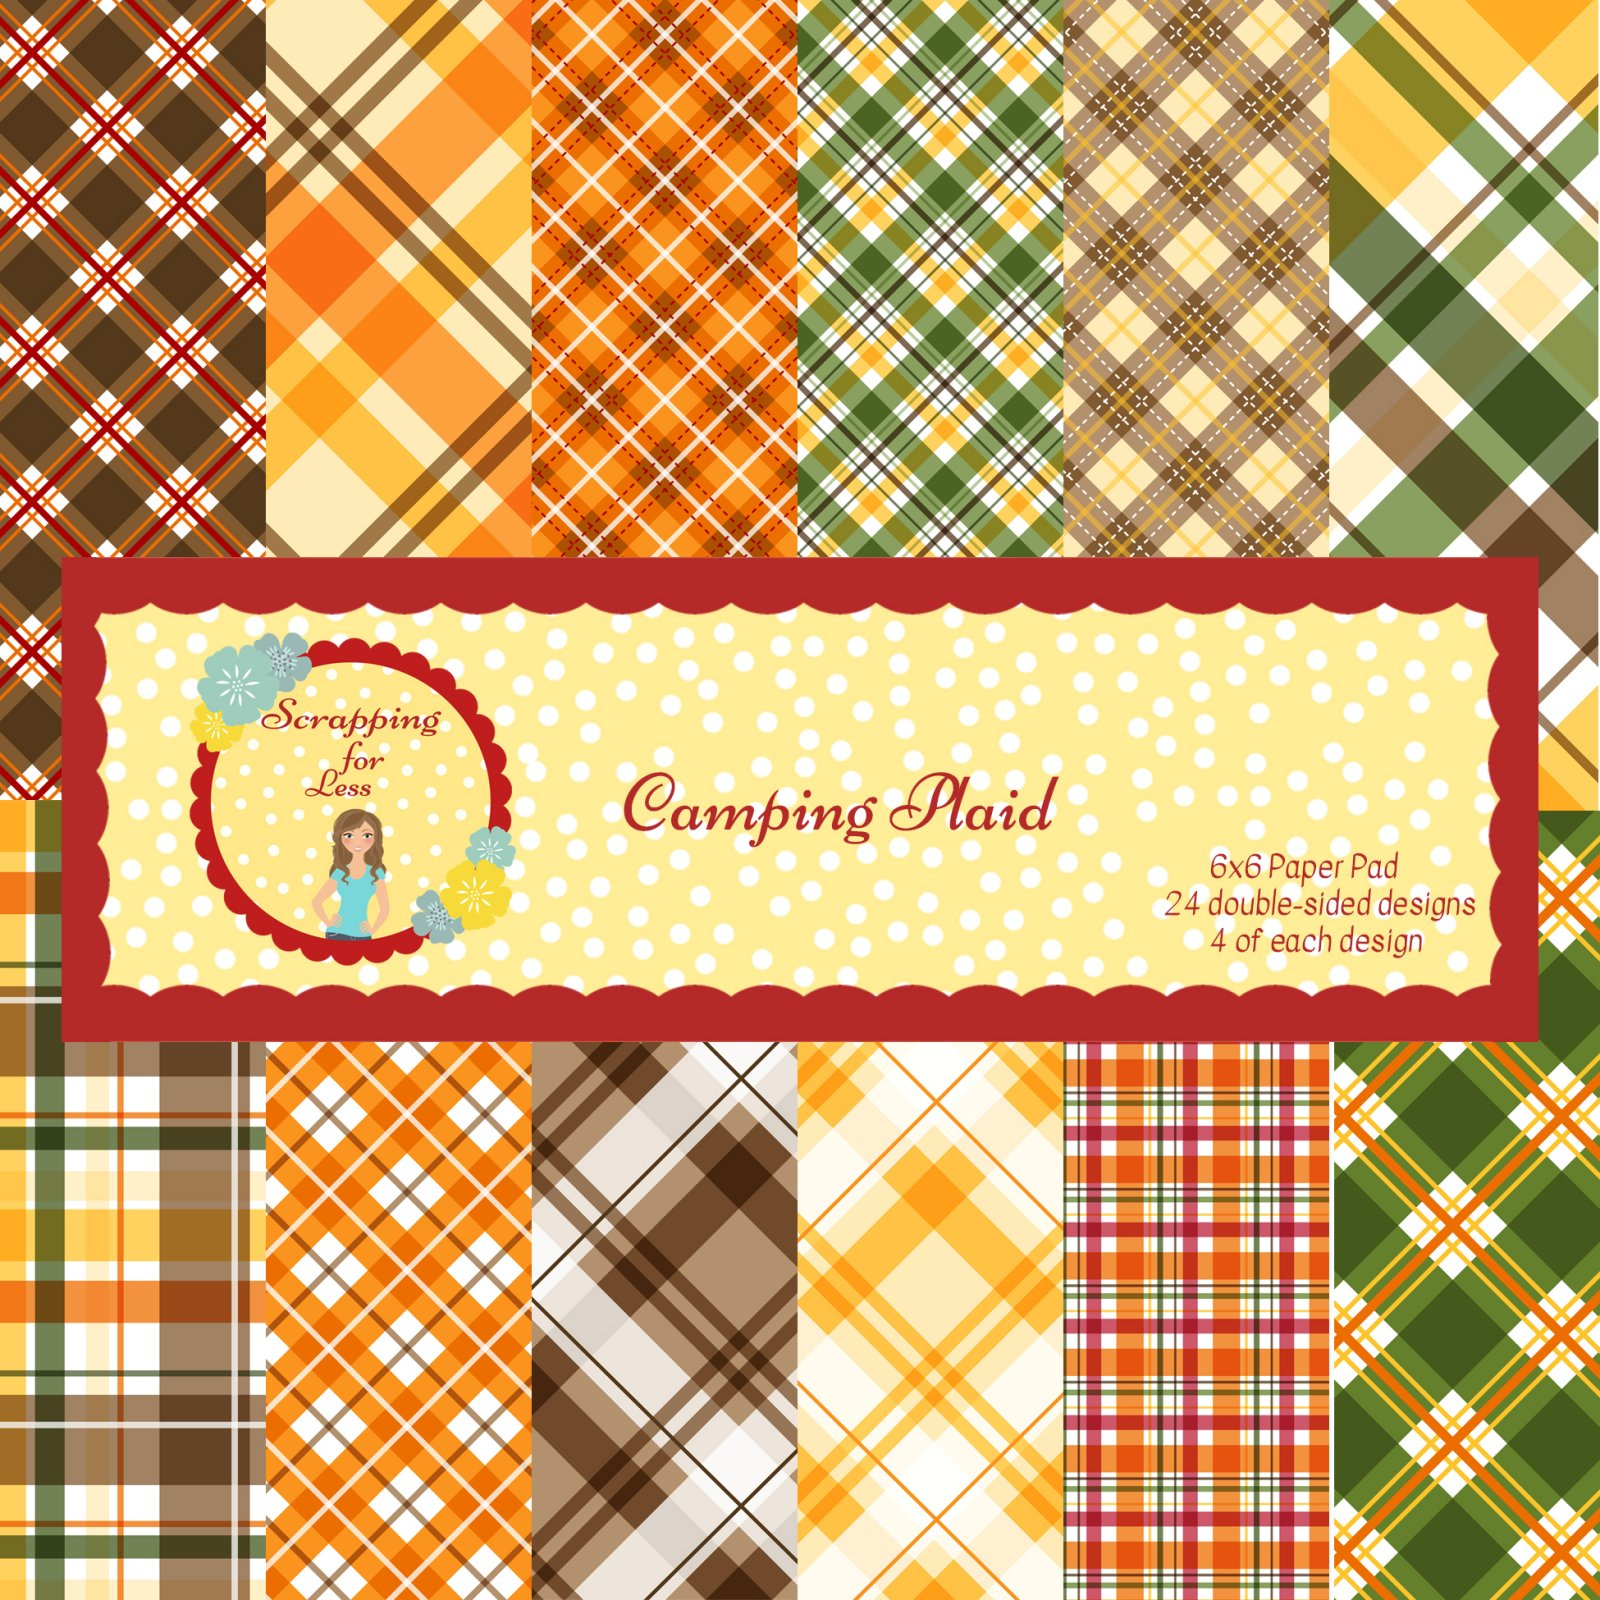 Scrapping for Less 6x6 Paper Pad Camping Plaid